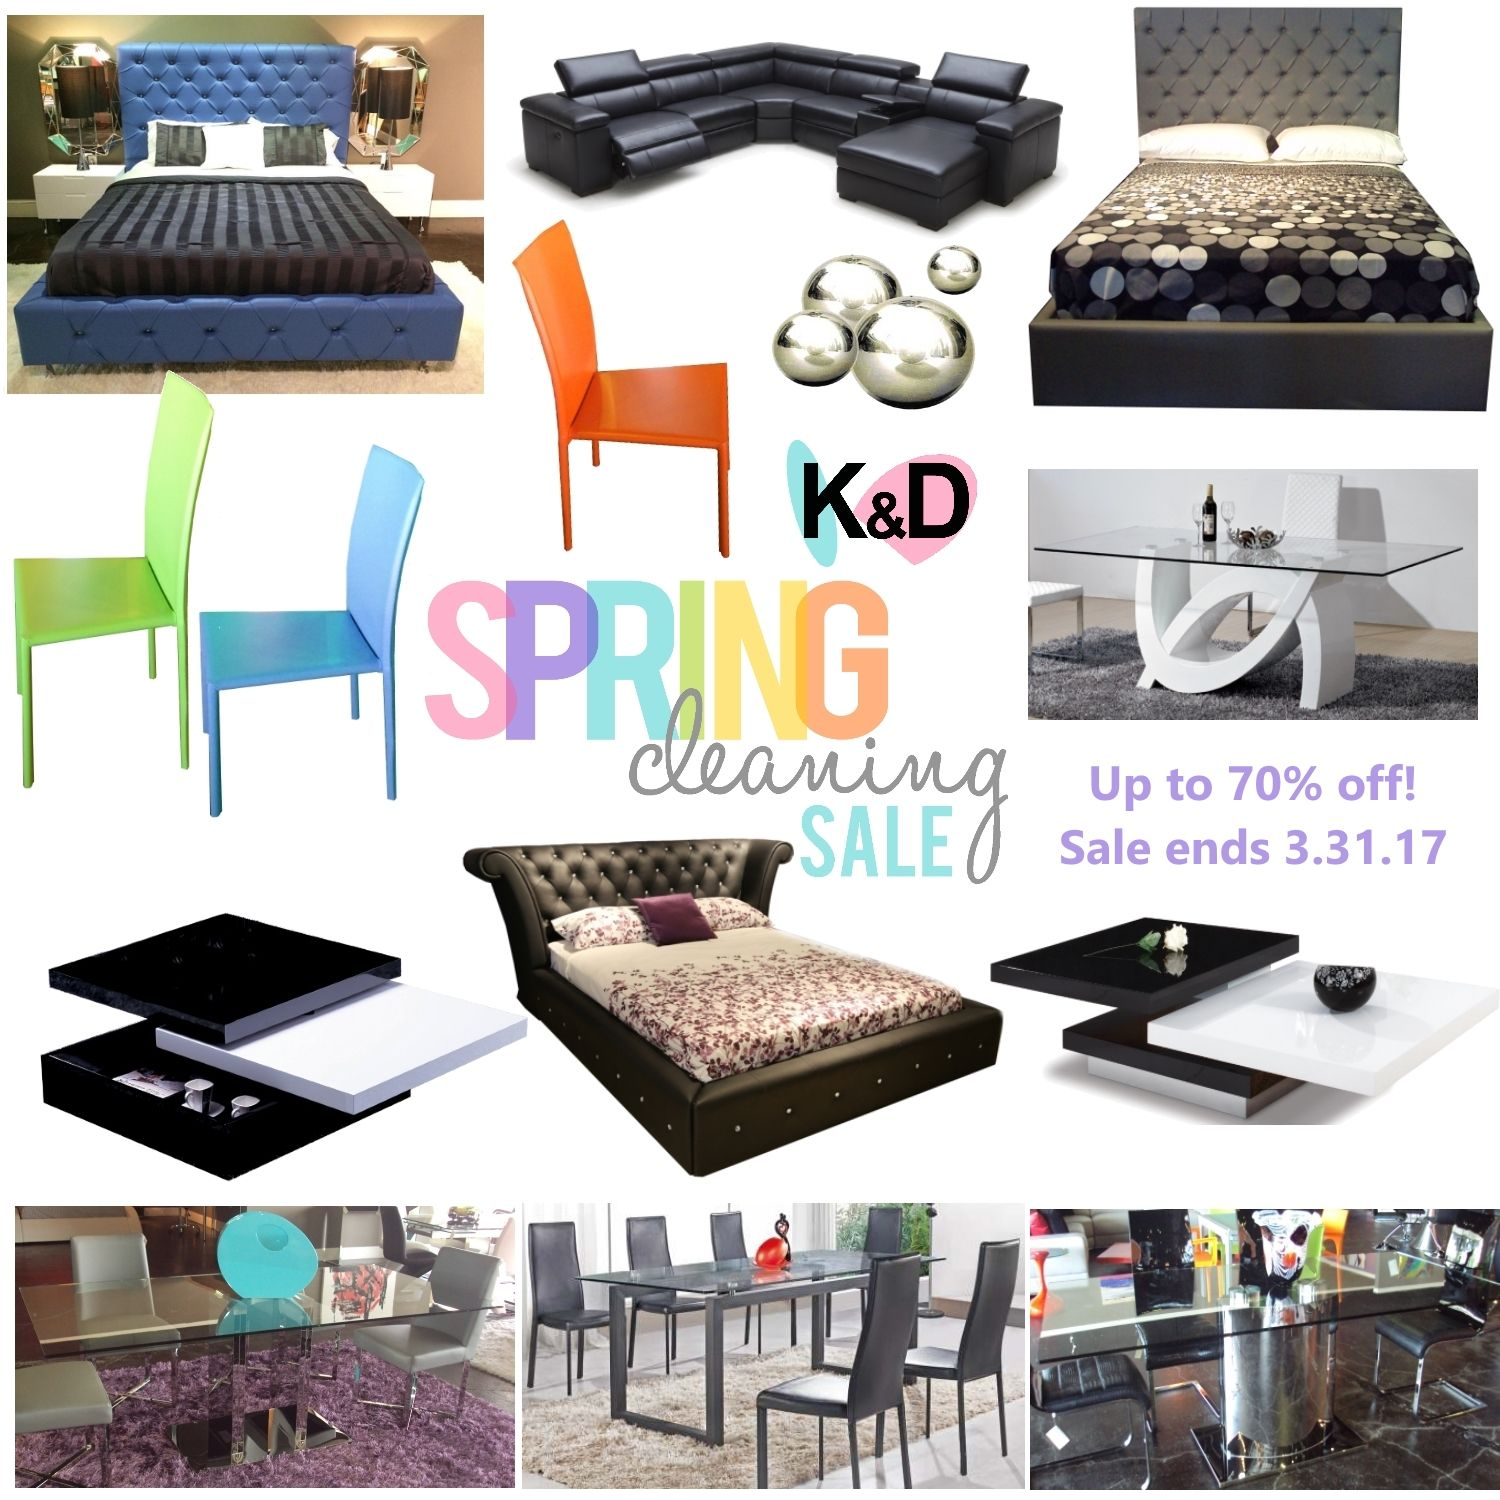 Spring Cleaning Sale Going On Now Save Up To 70 Off On Select Items Offer Is Over 3 31 17 Houst Houston Furniture Contemporary Furniture Home Furniture